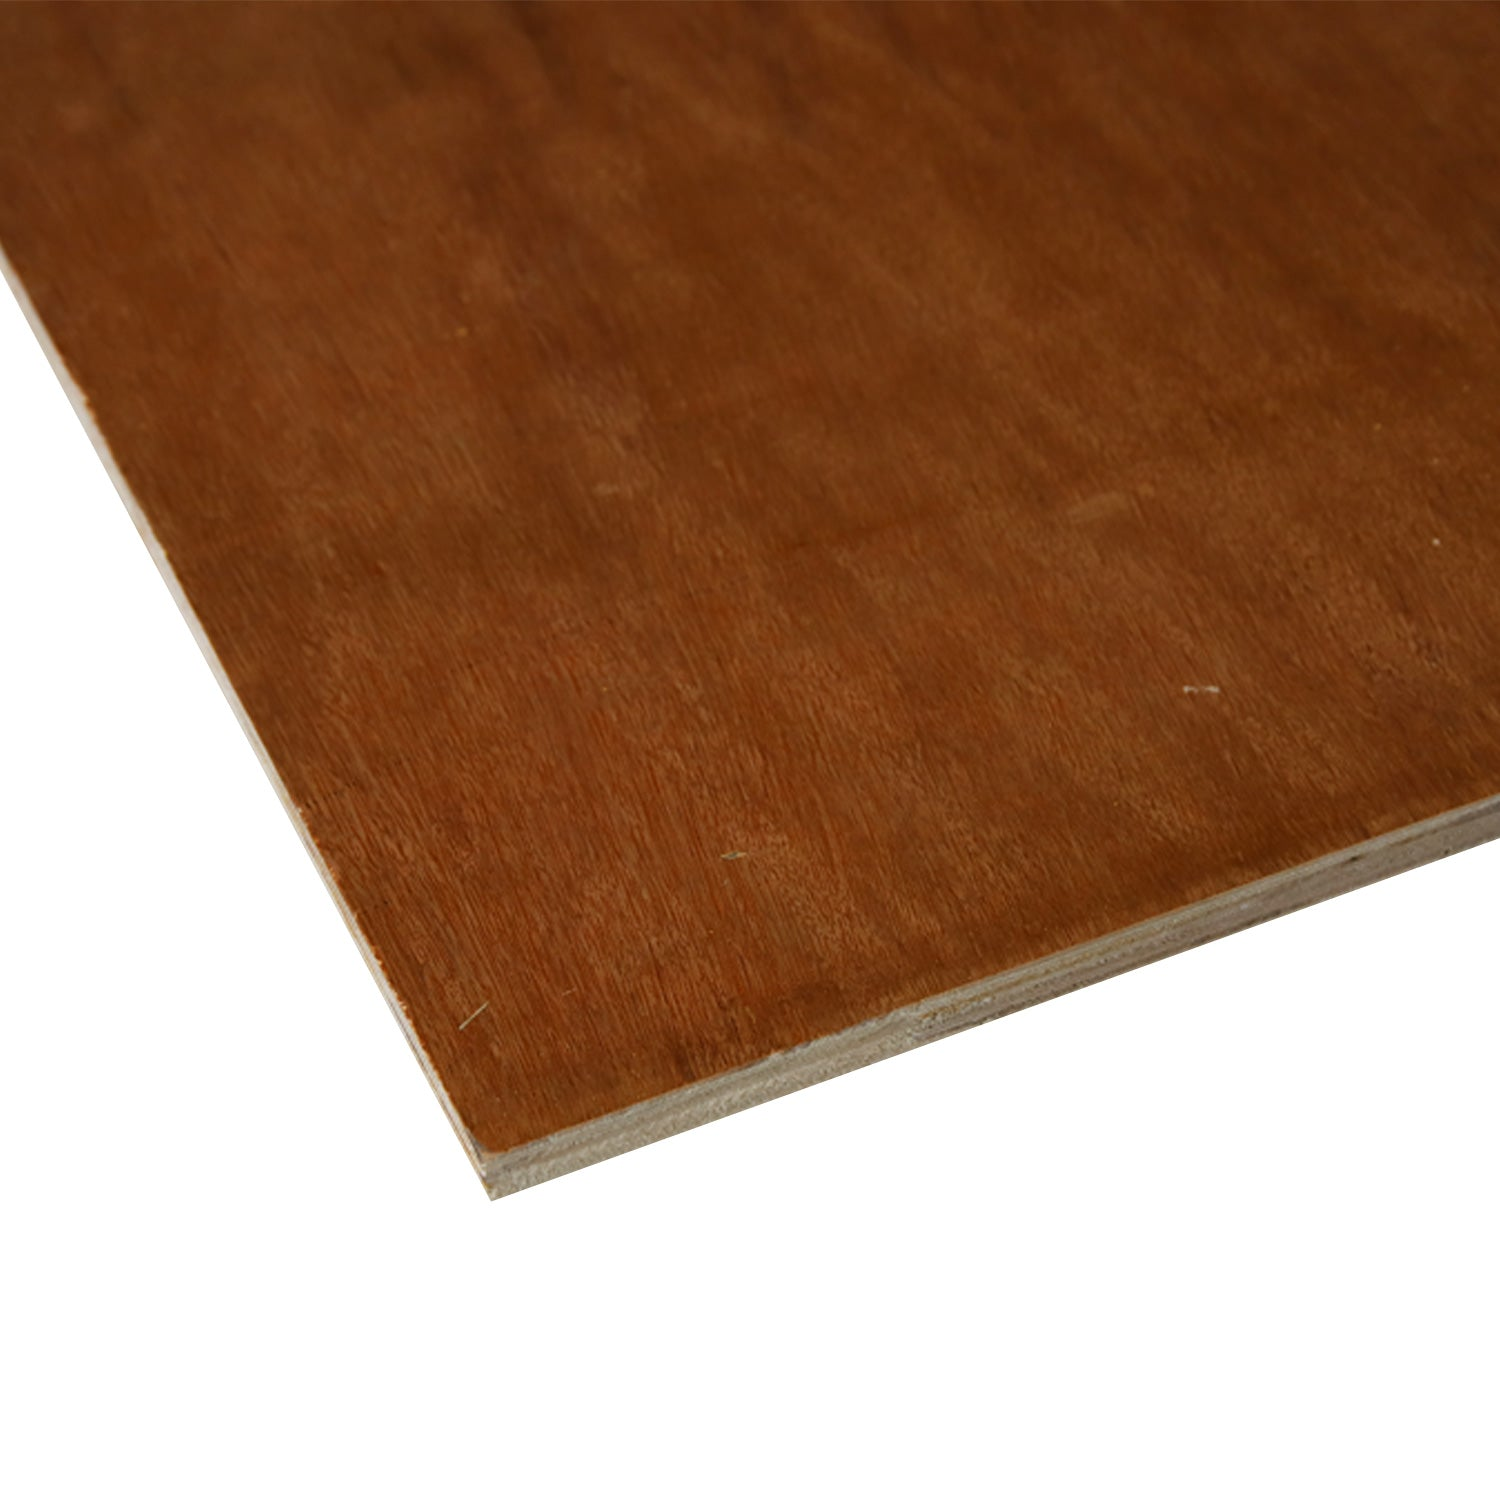 Finish Ply (Hardwood) 8' x 4' x 12mm